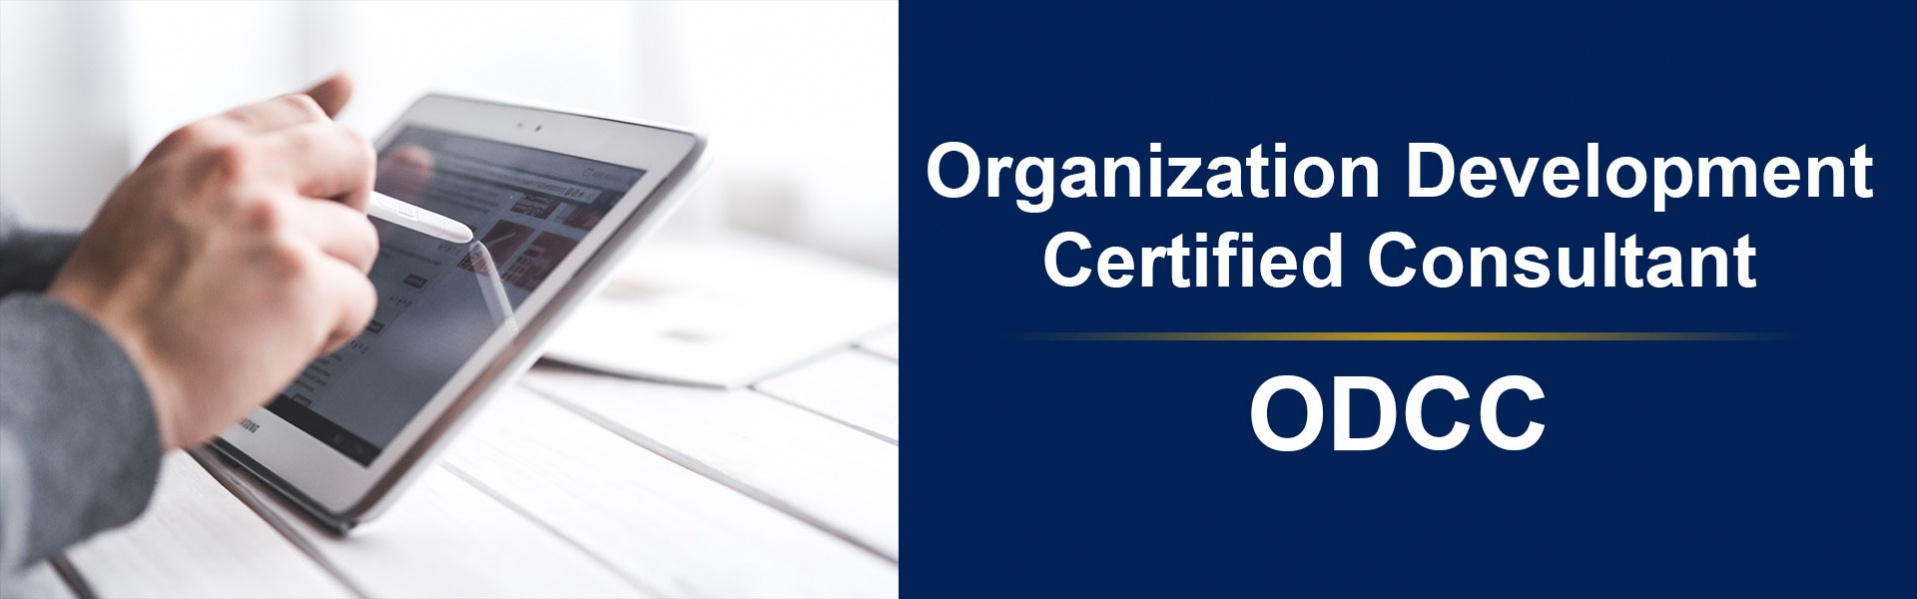 Organization Development Consultant Certification Program